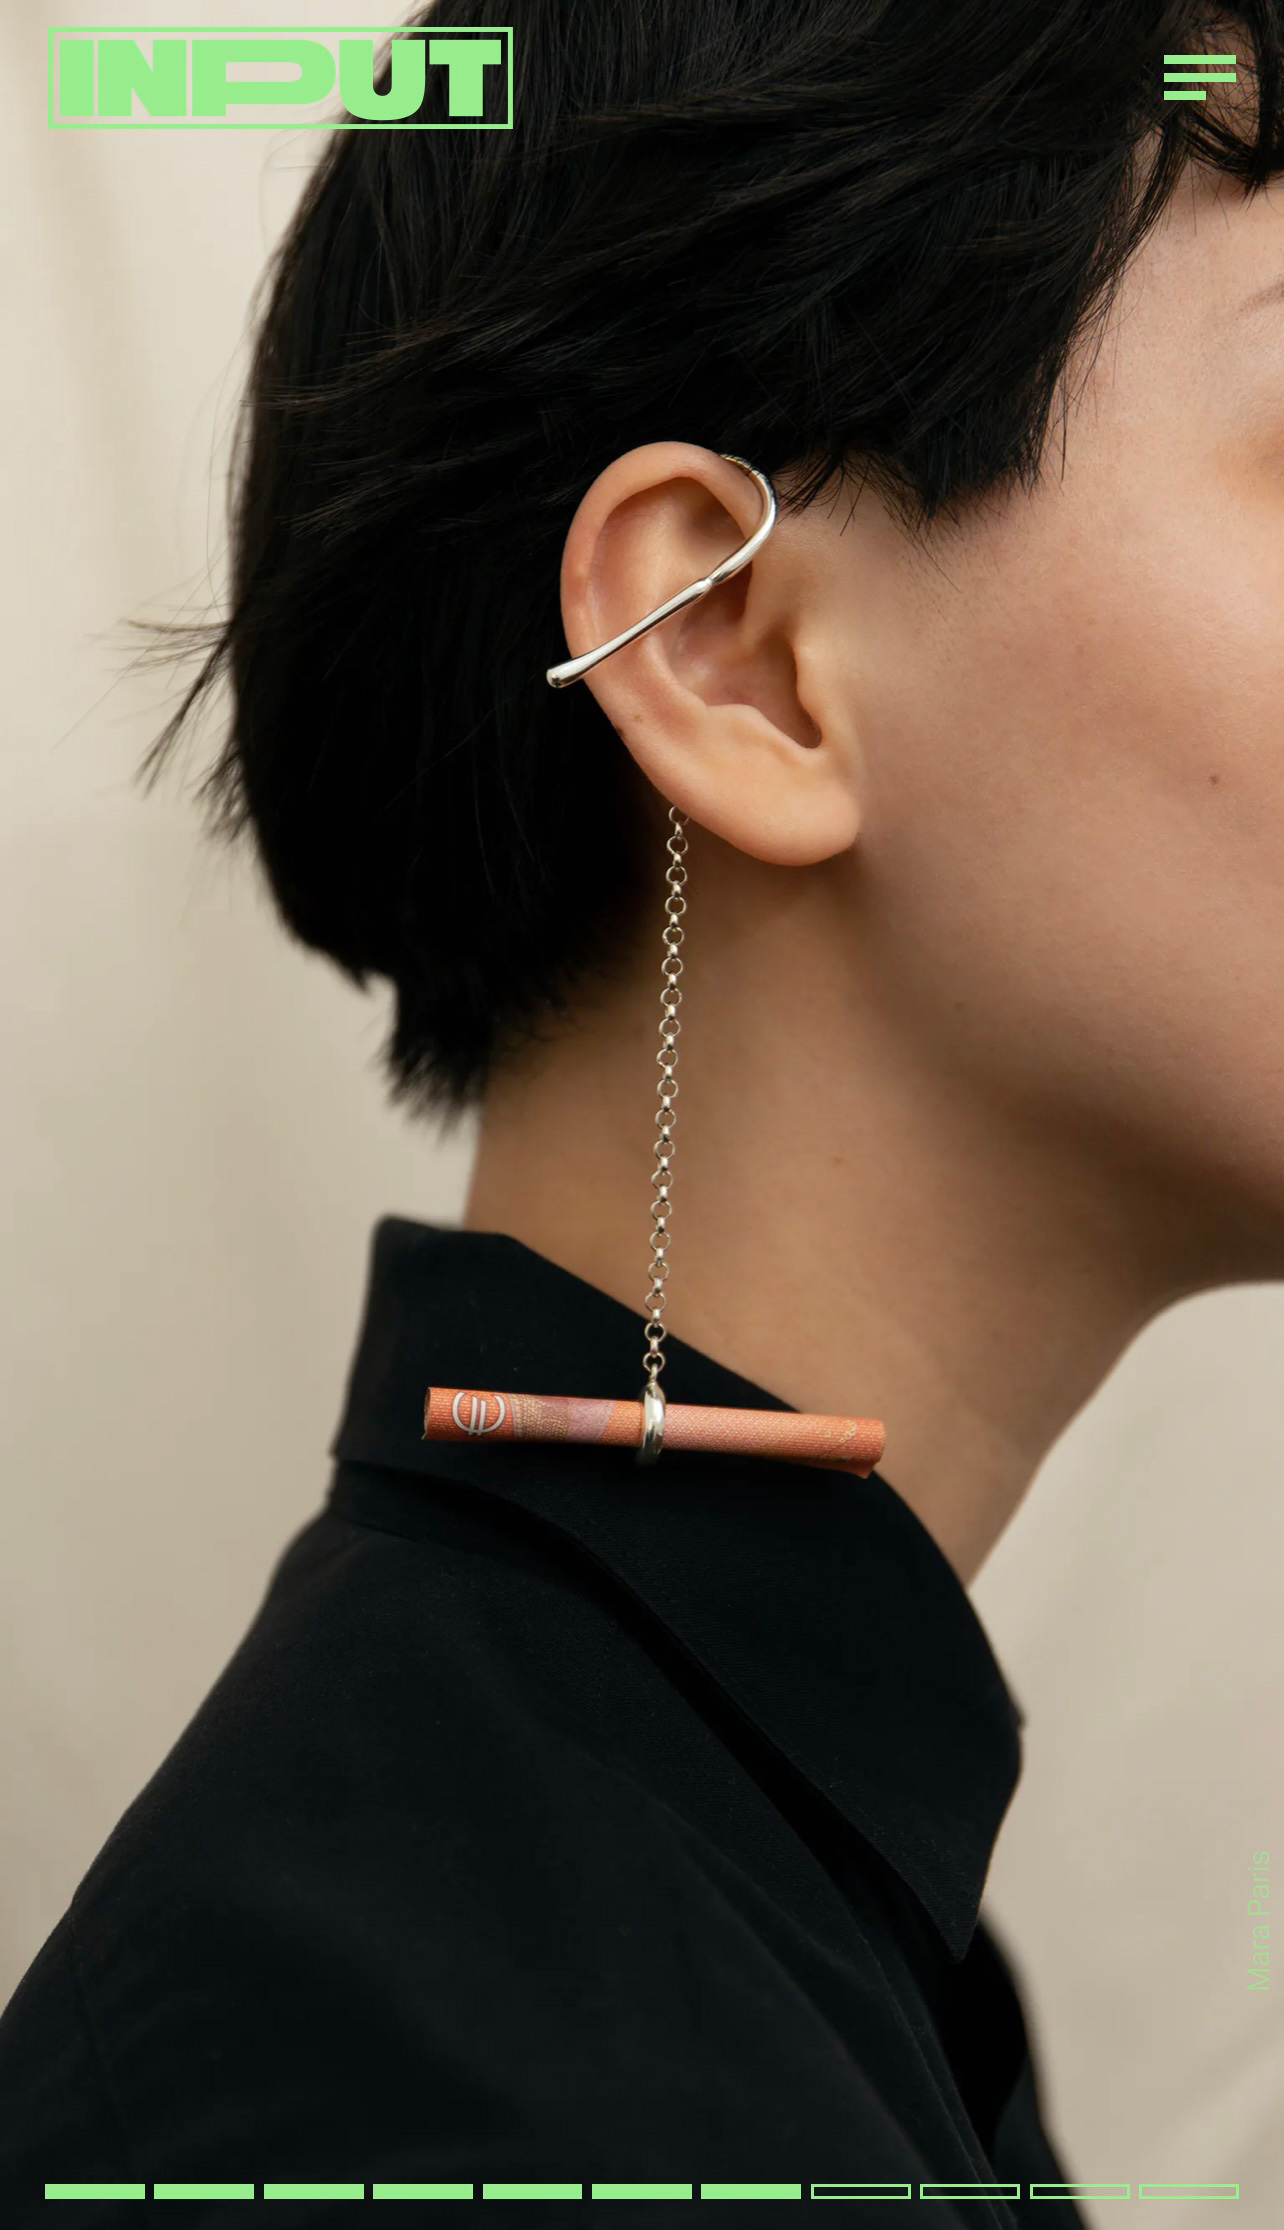 Input Mag - Mara Paris' functional jewelry shows AirPods earrings might actually work